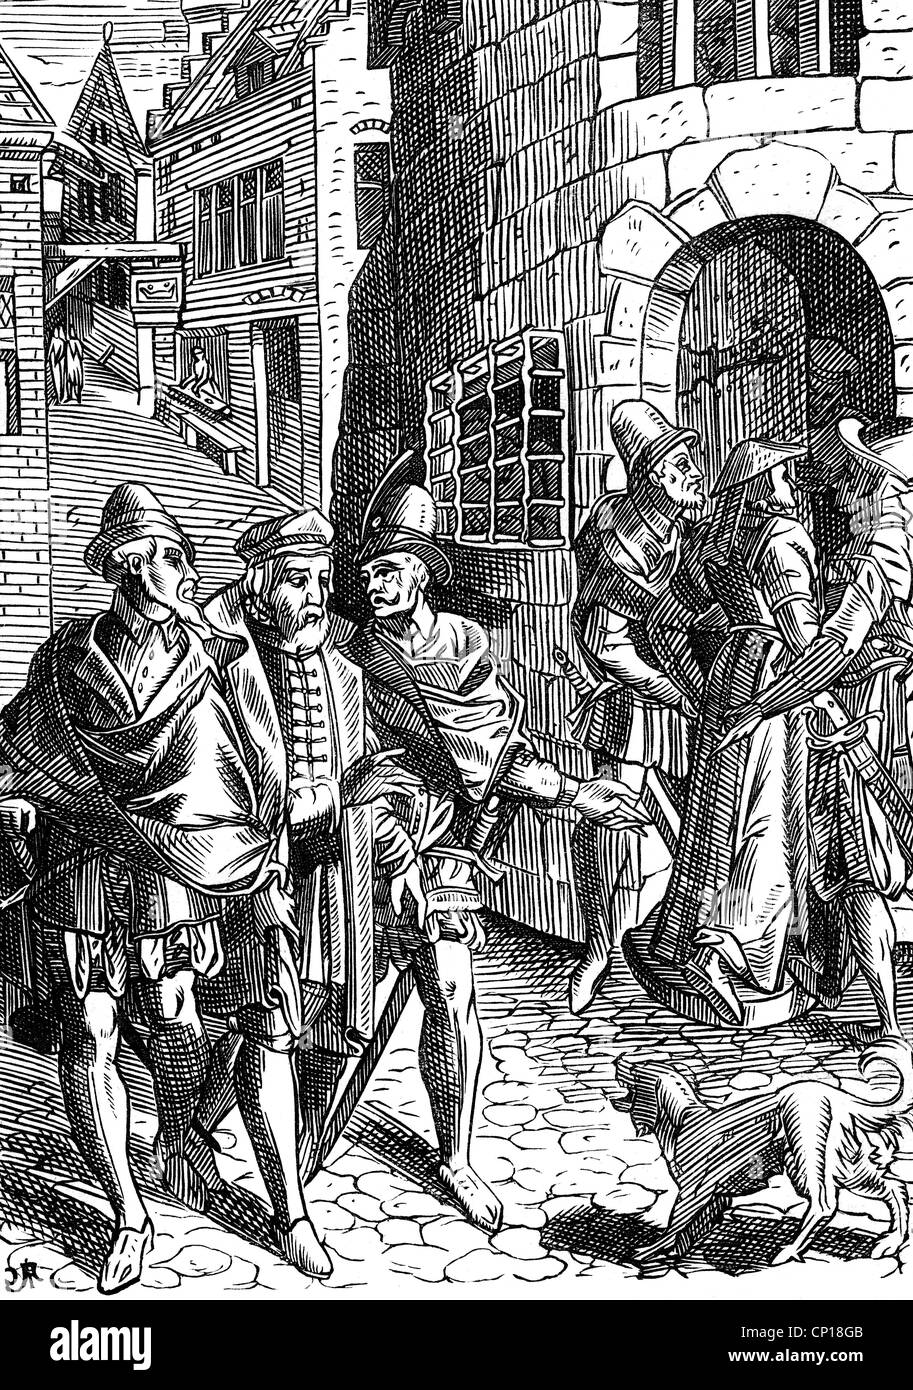 justice, penitentiary system, prison, admission of a femal prisoner, woodcut by J. Damhoudere, France, 16th century, - Stock Image